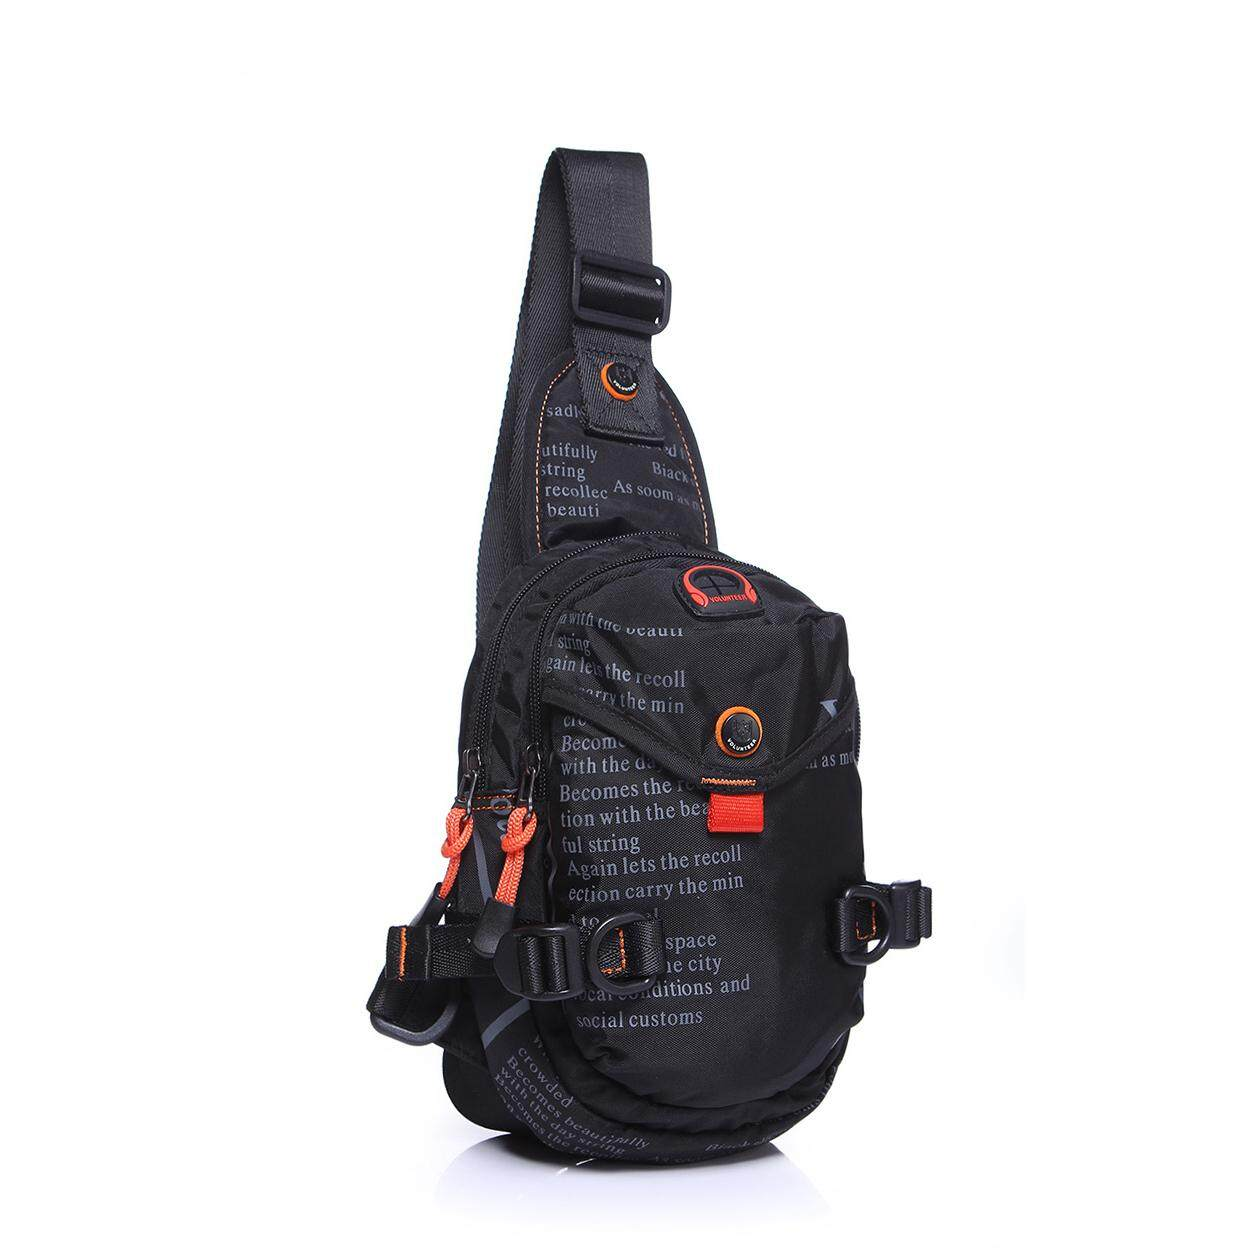 Sling Bags For Men Sale Cross Online Brands Tas Waist Bag Barca New Style Mens Chest Pack Mini Small Outdoor Sports Leisure Backpack Canvas Korean